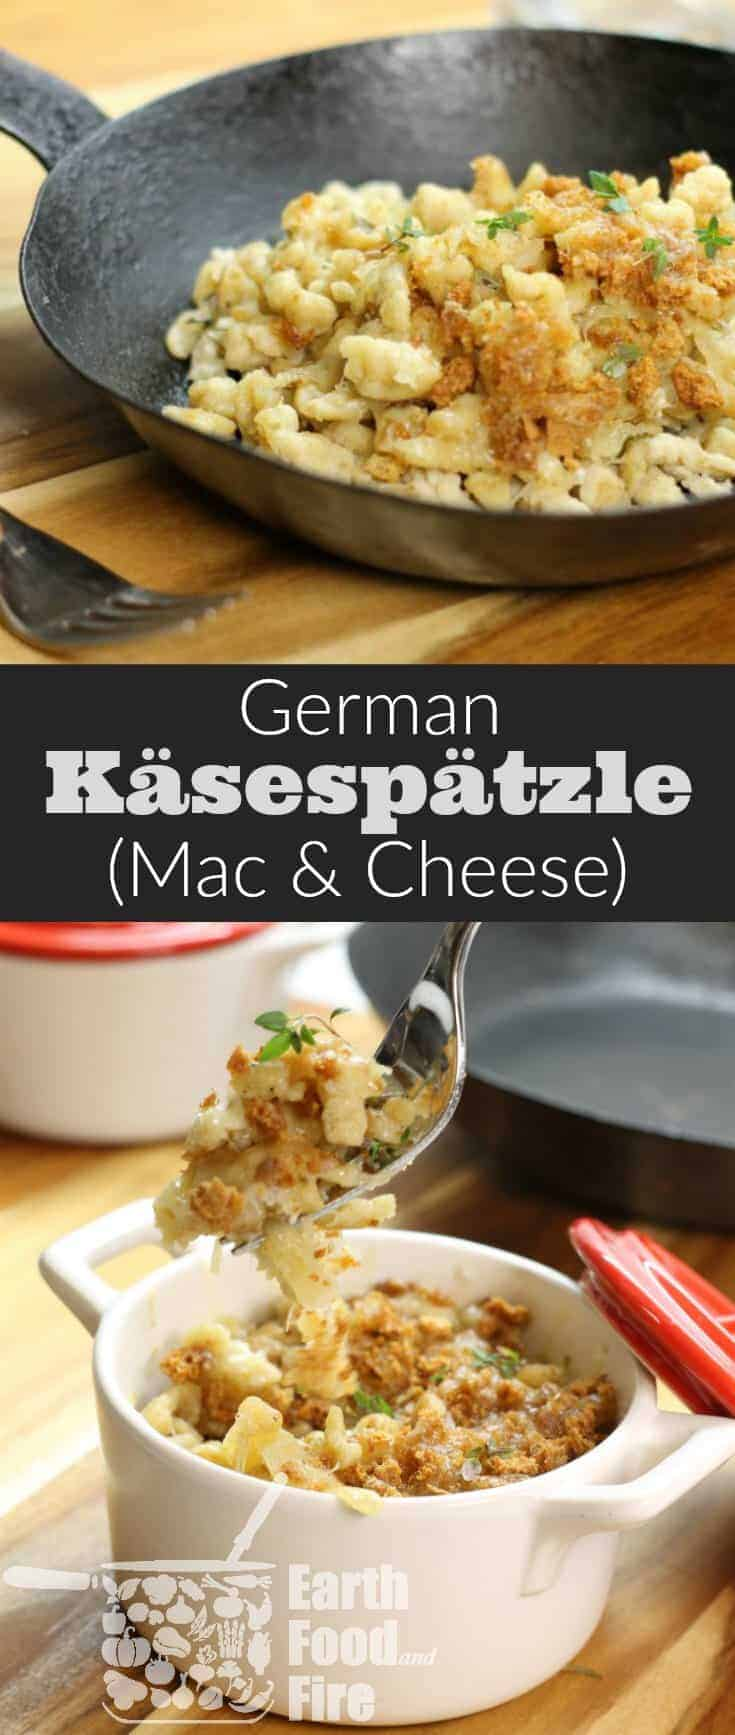 German käsespätzle also known as cheese spaetzle, is an easy to make noodle dish loaded with Emmental Cheese. Basically a fancy Mac & Cheese this traditional German dish is ideal for lunch or a quick supper! #spaetzle #cheese #macandcheese #noodles